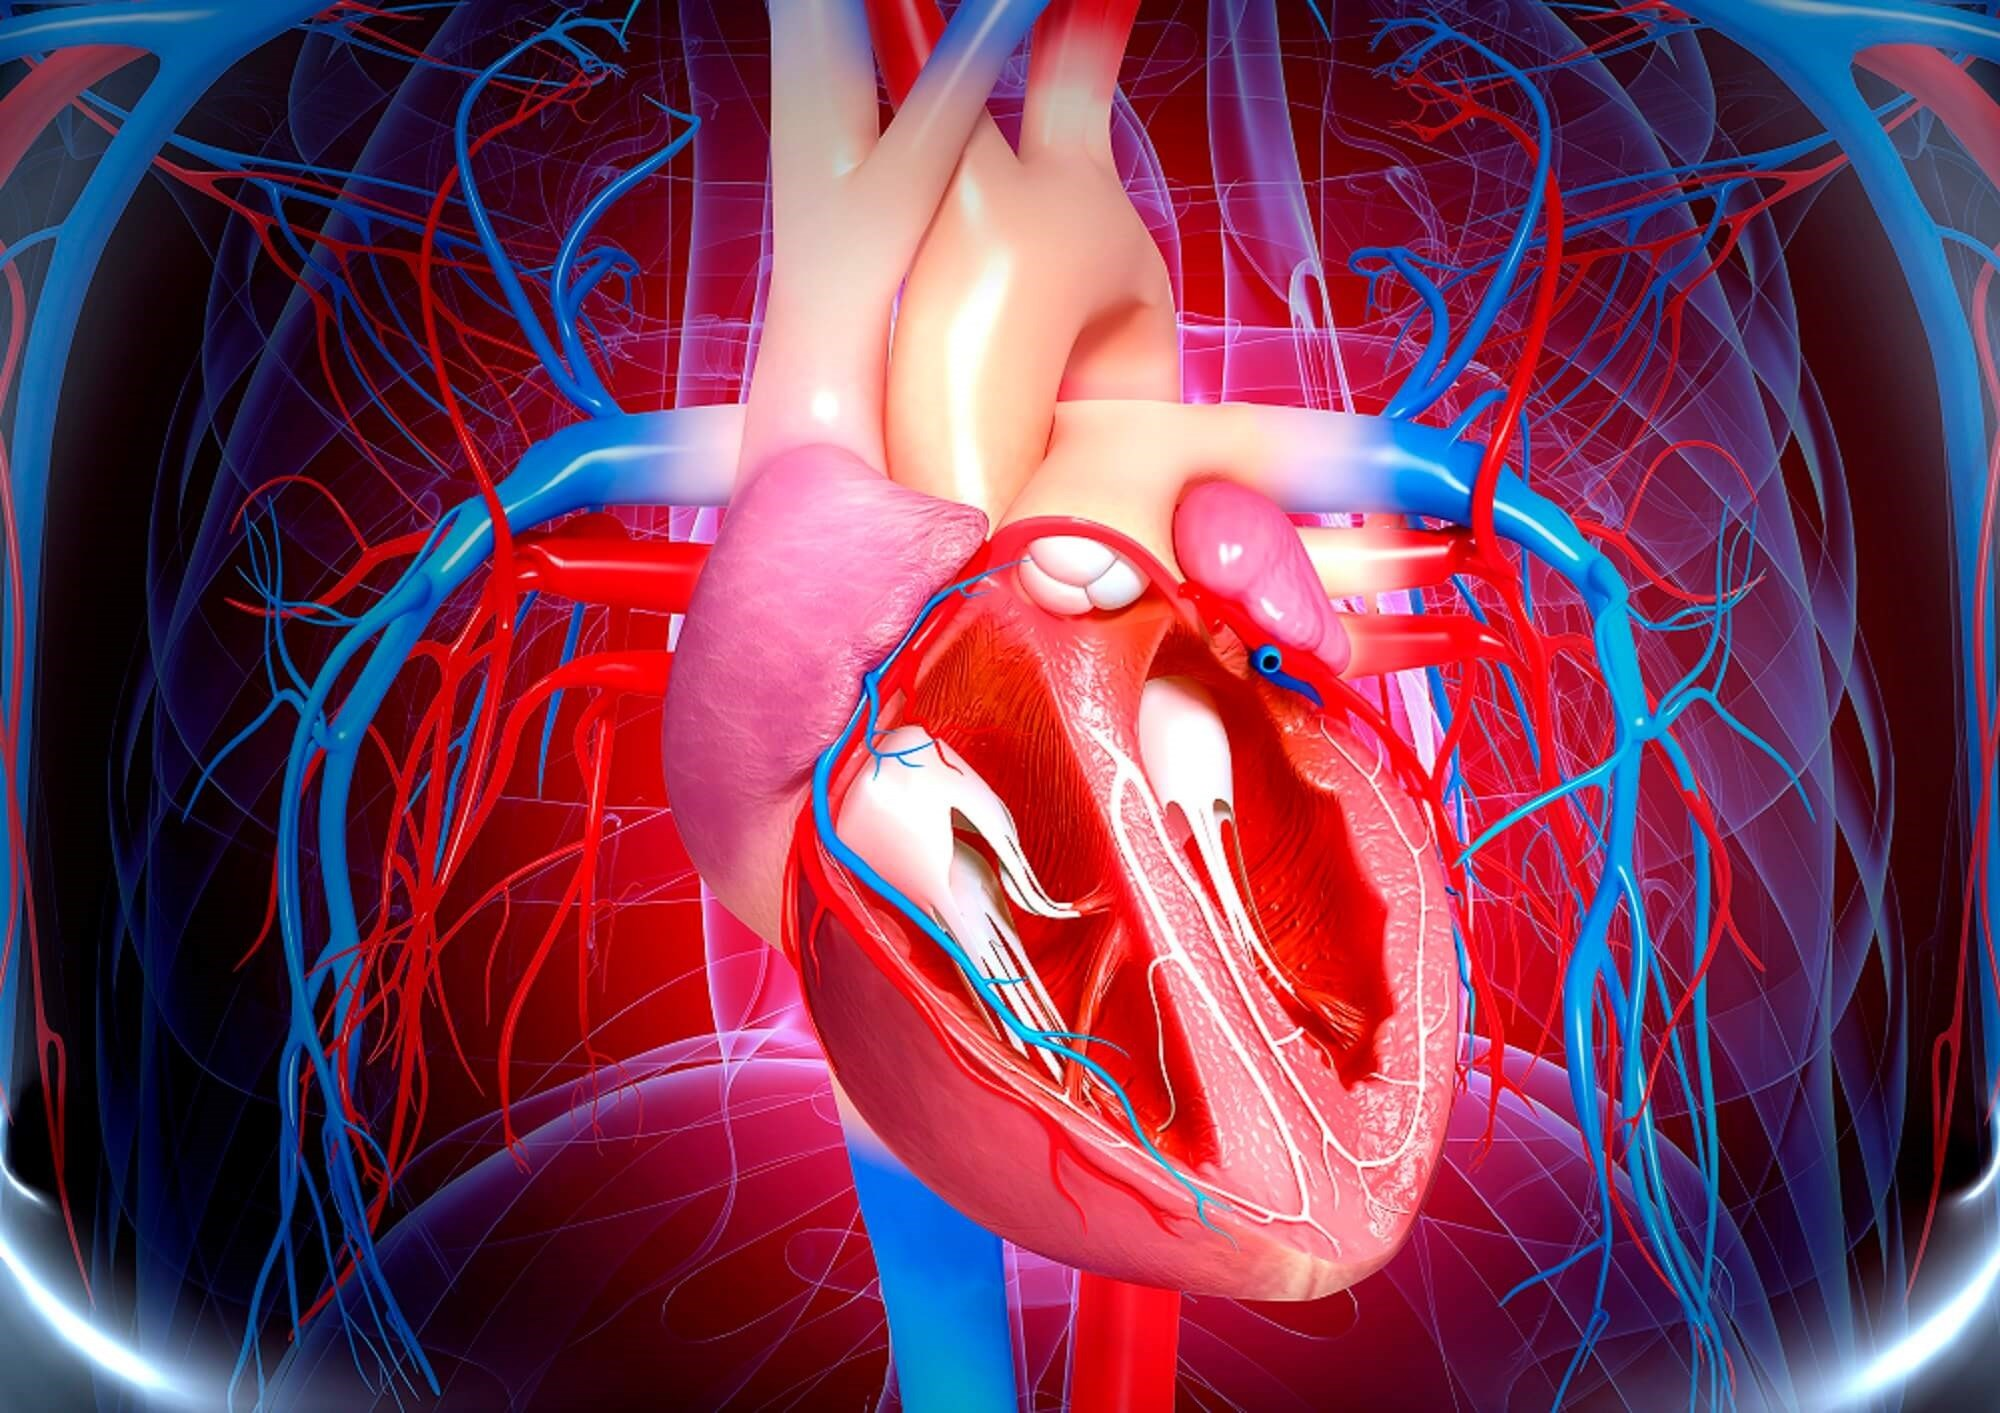 Gout Associated With Worse Outcomes in Obstructive Coronary Artery Disease